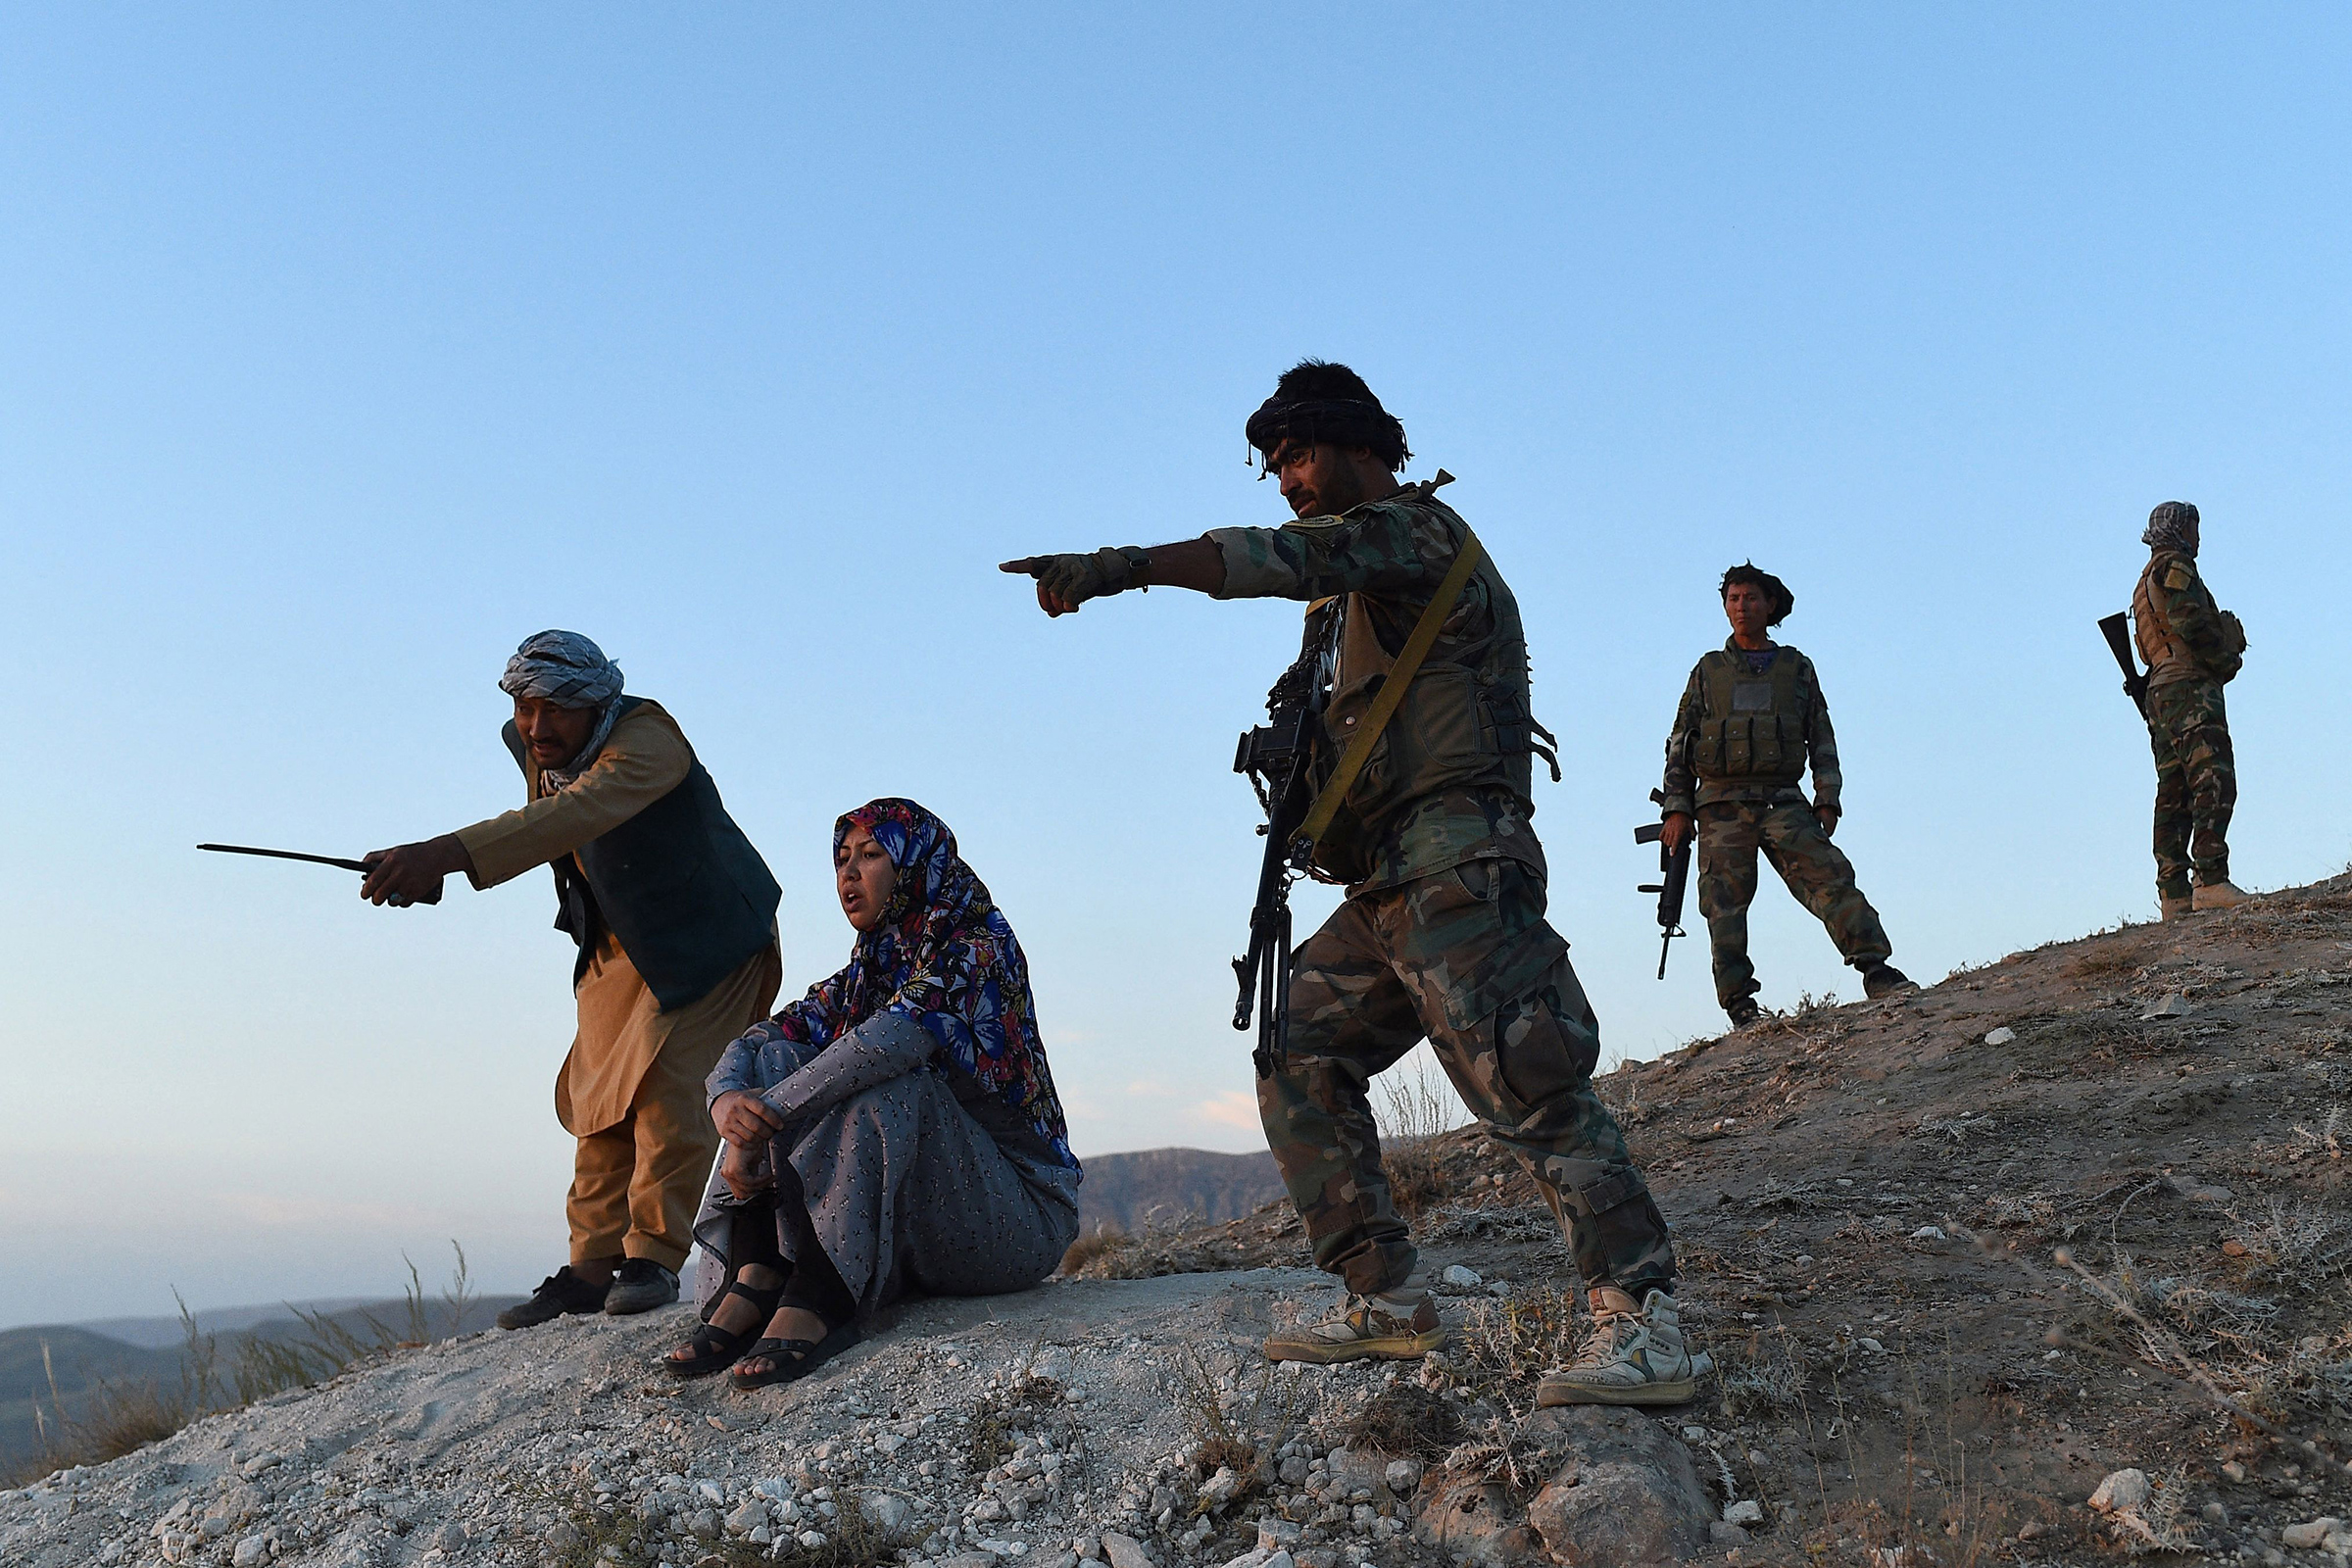 District governor Salima Mazari (second from left) looks on from a hill while accompanied by security personnel near the frontlines against the Taliban, at Charkint district in Balkh province, Afghanistan, on July 14.